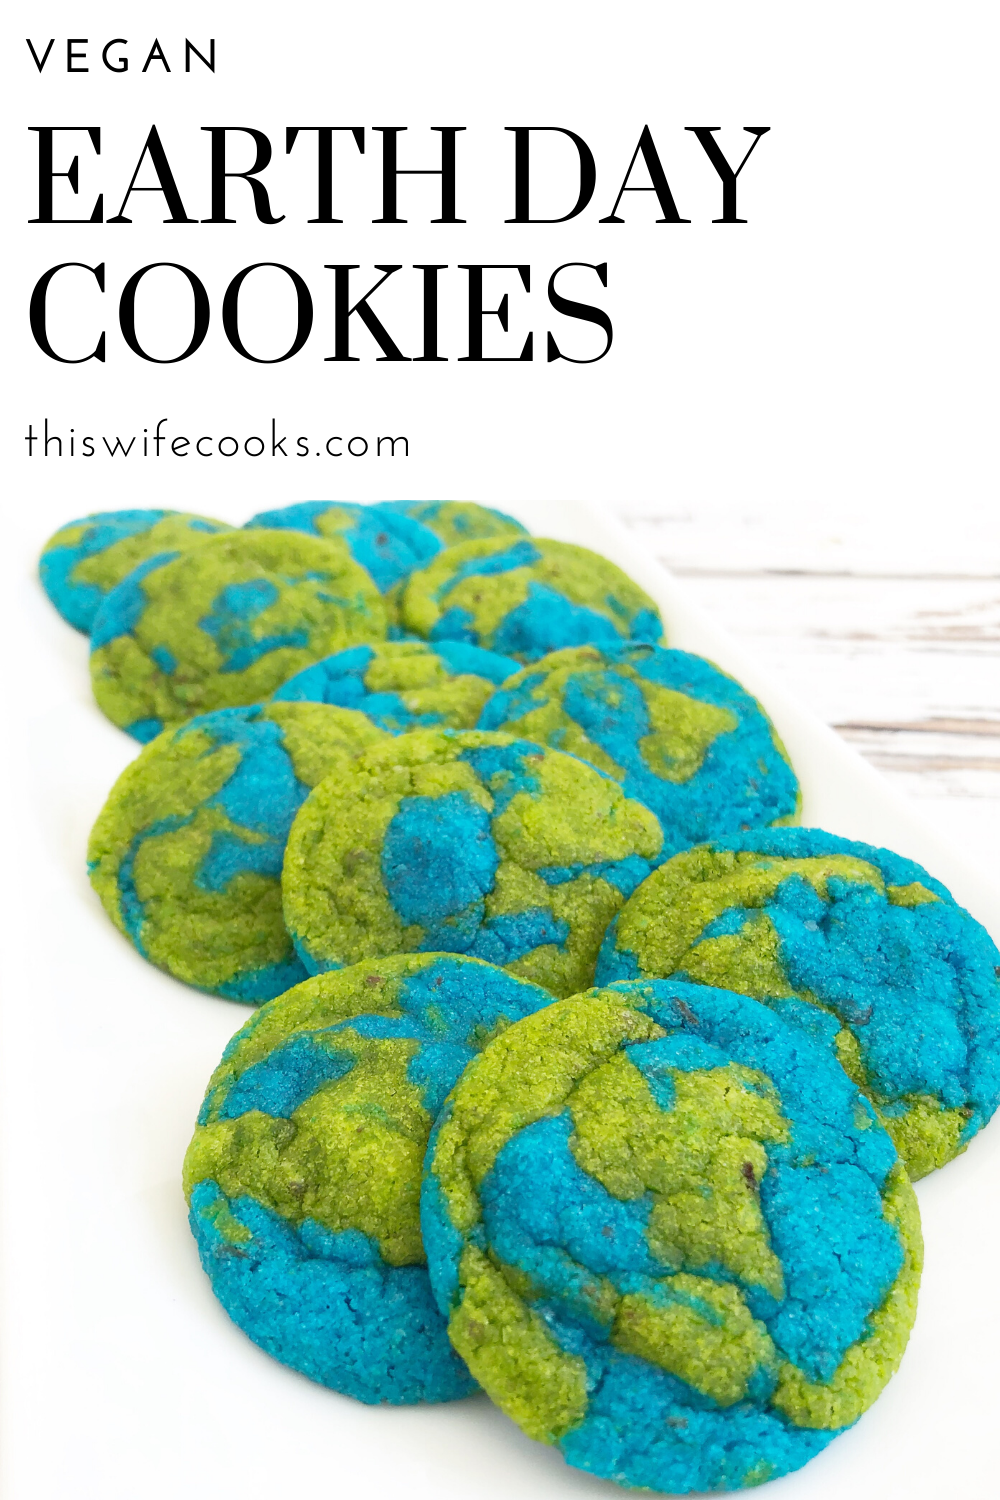 Vegan Earth Day Cookies! These semi-homemade and dairy-free cookies are super easy to make and are absolutely perfect for Earth Day! via @thiswifecooks